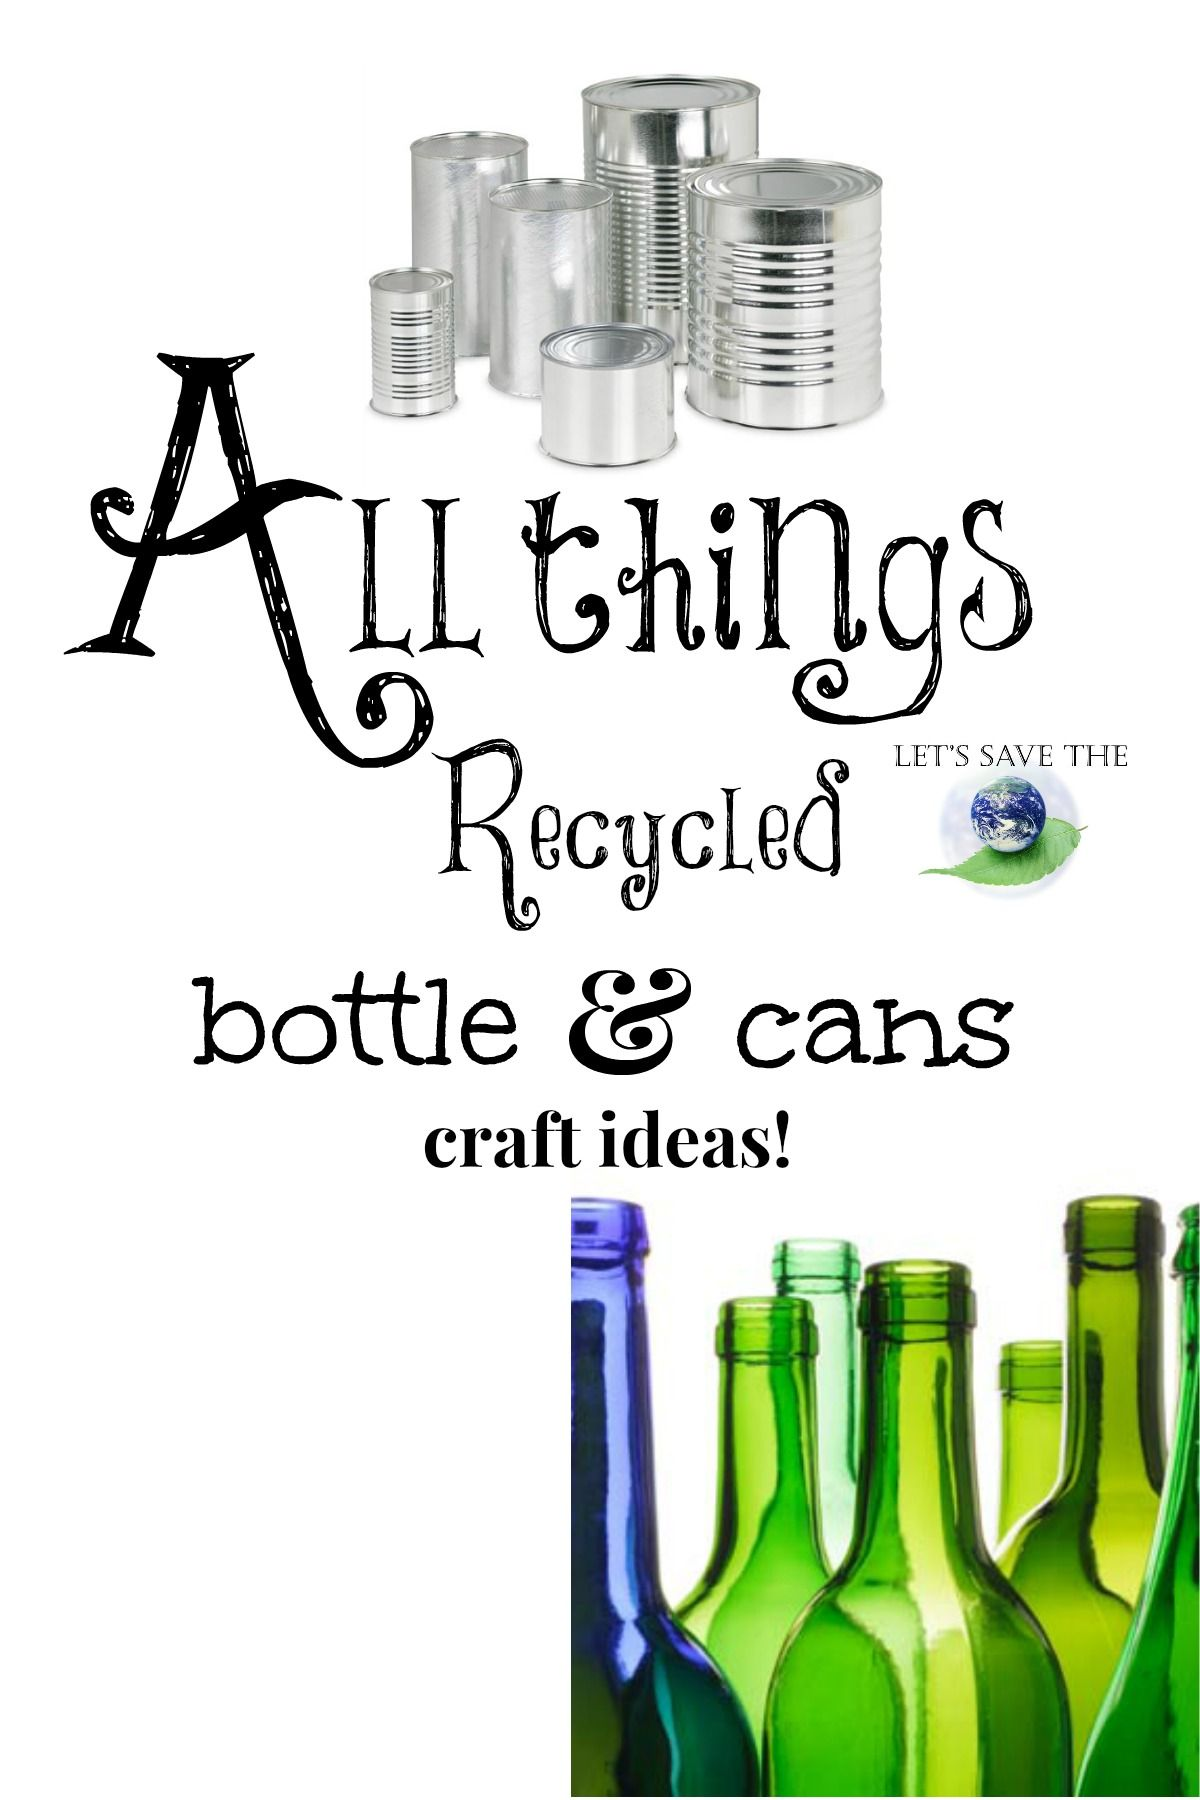 All things bottle and cans recycle crafts